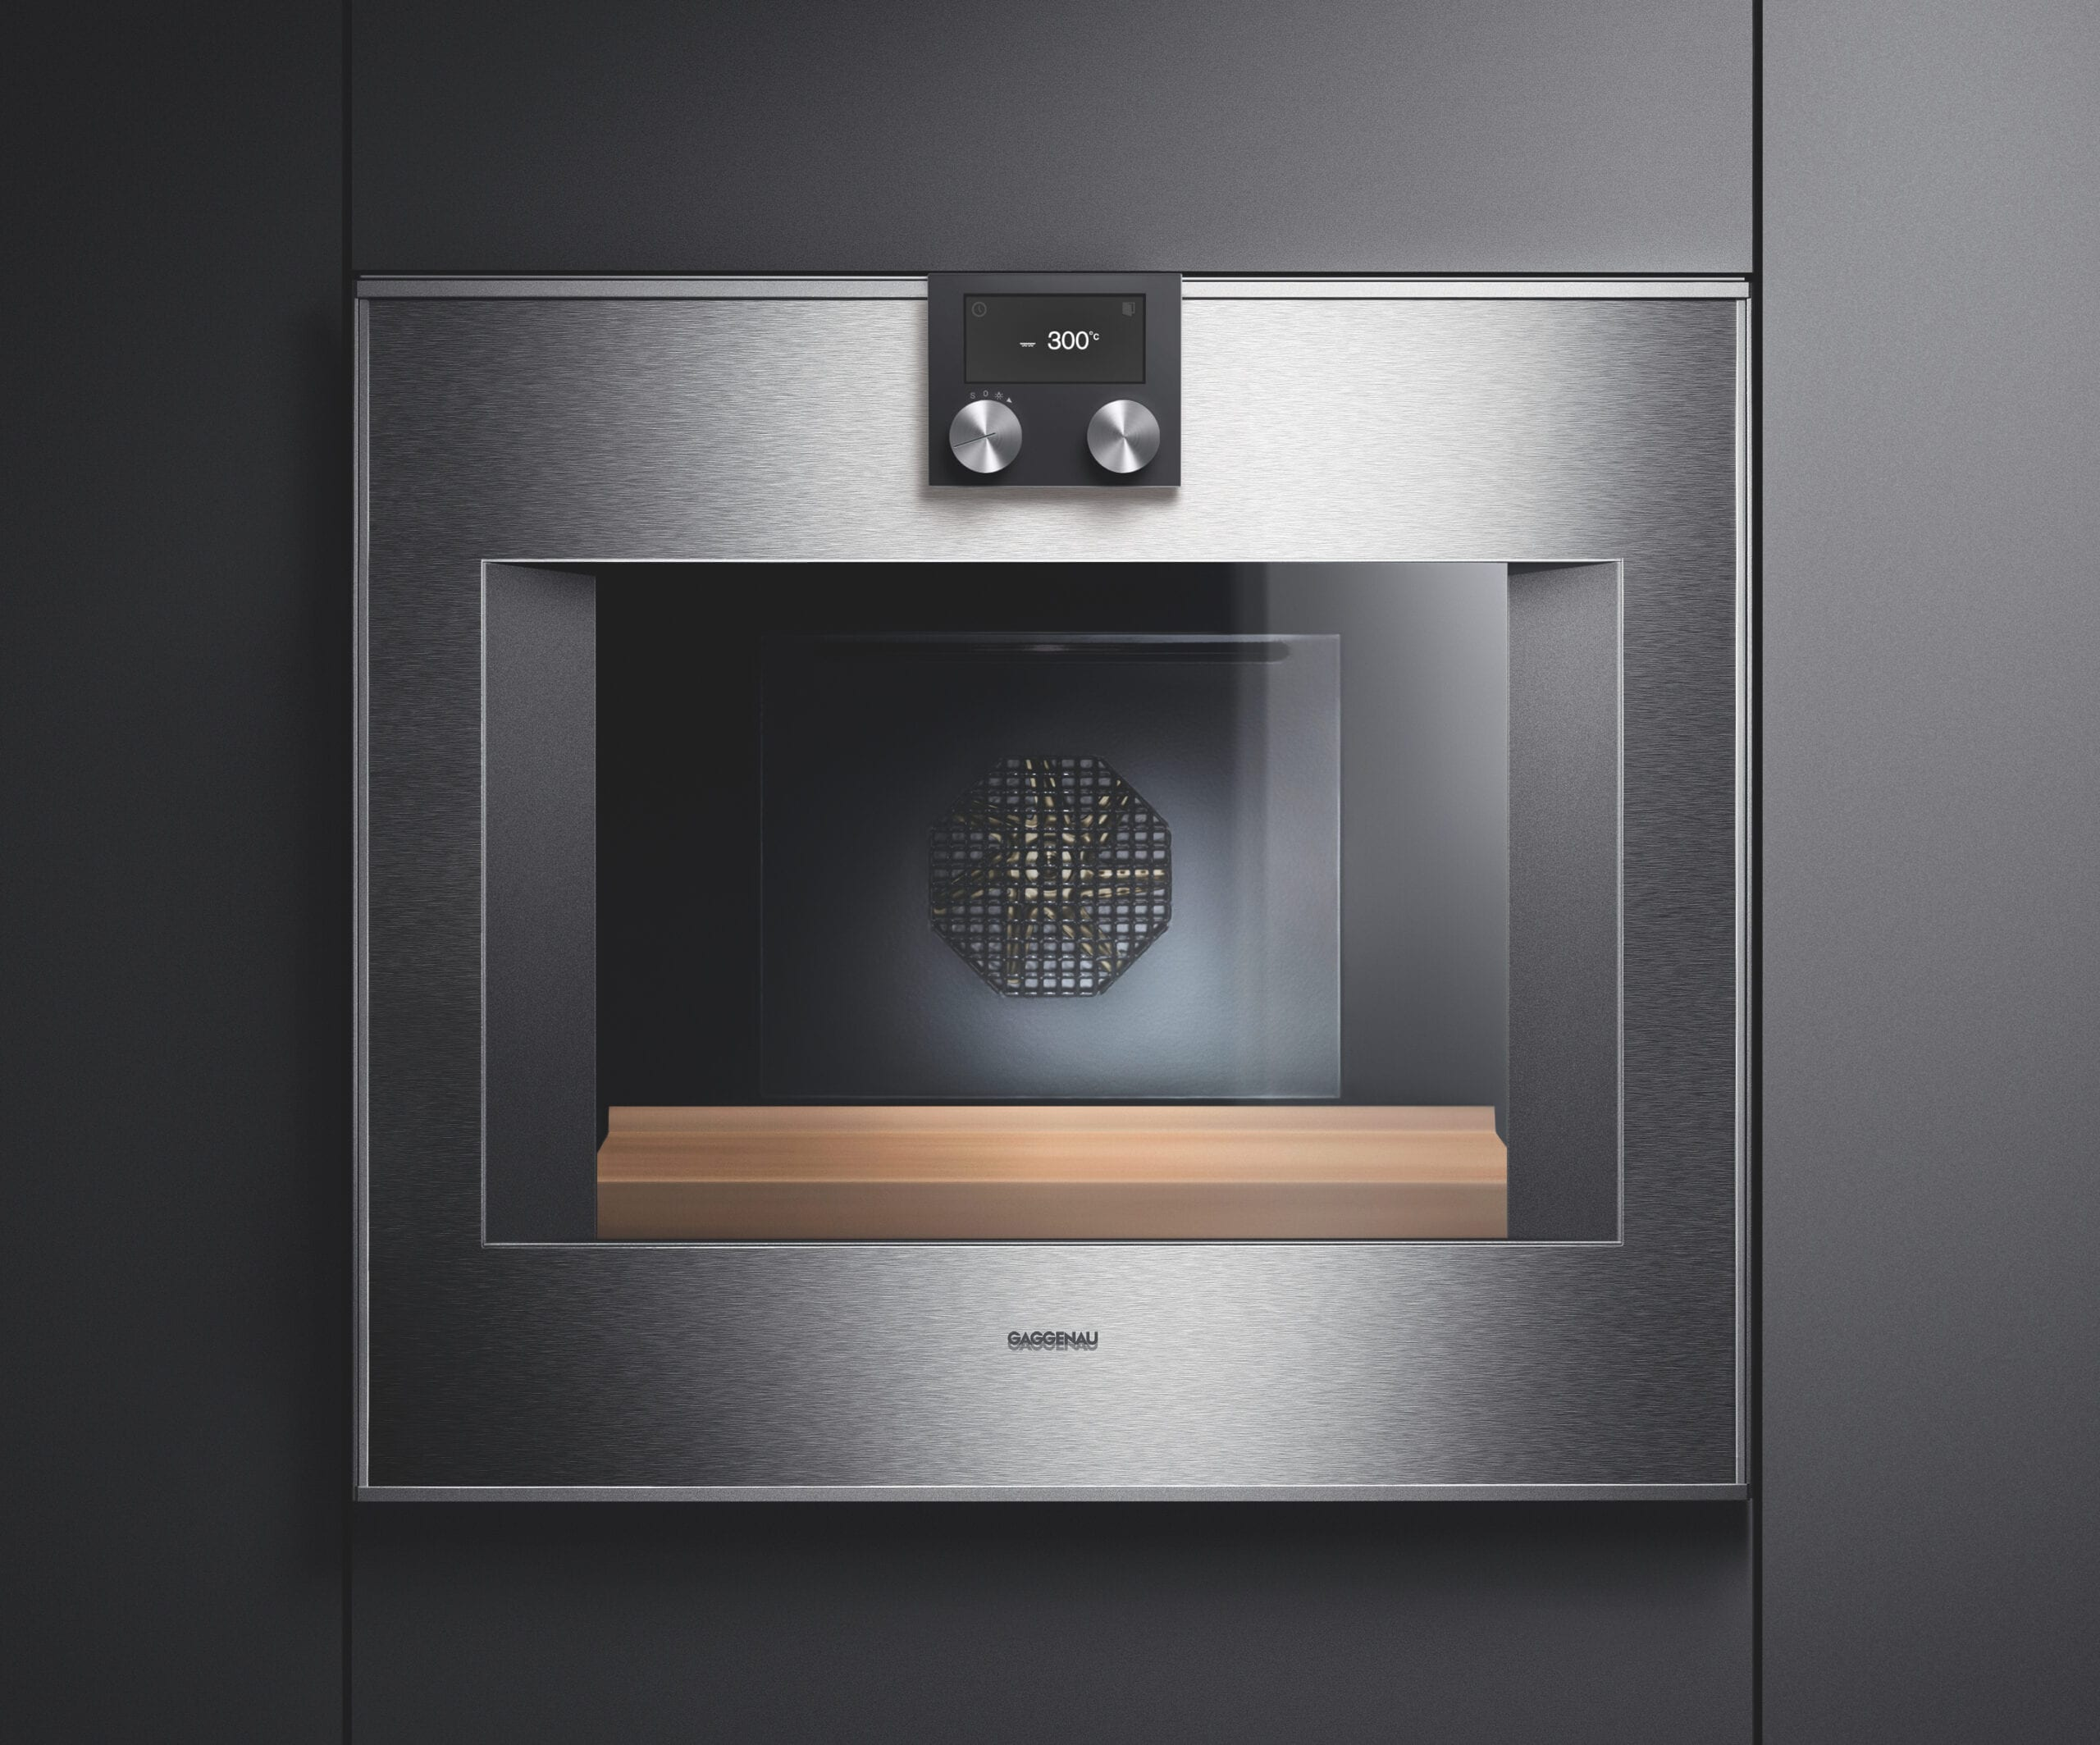 Mcim02579736 Choice 1 400 Series Ovens   Such Designs, London